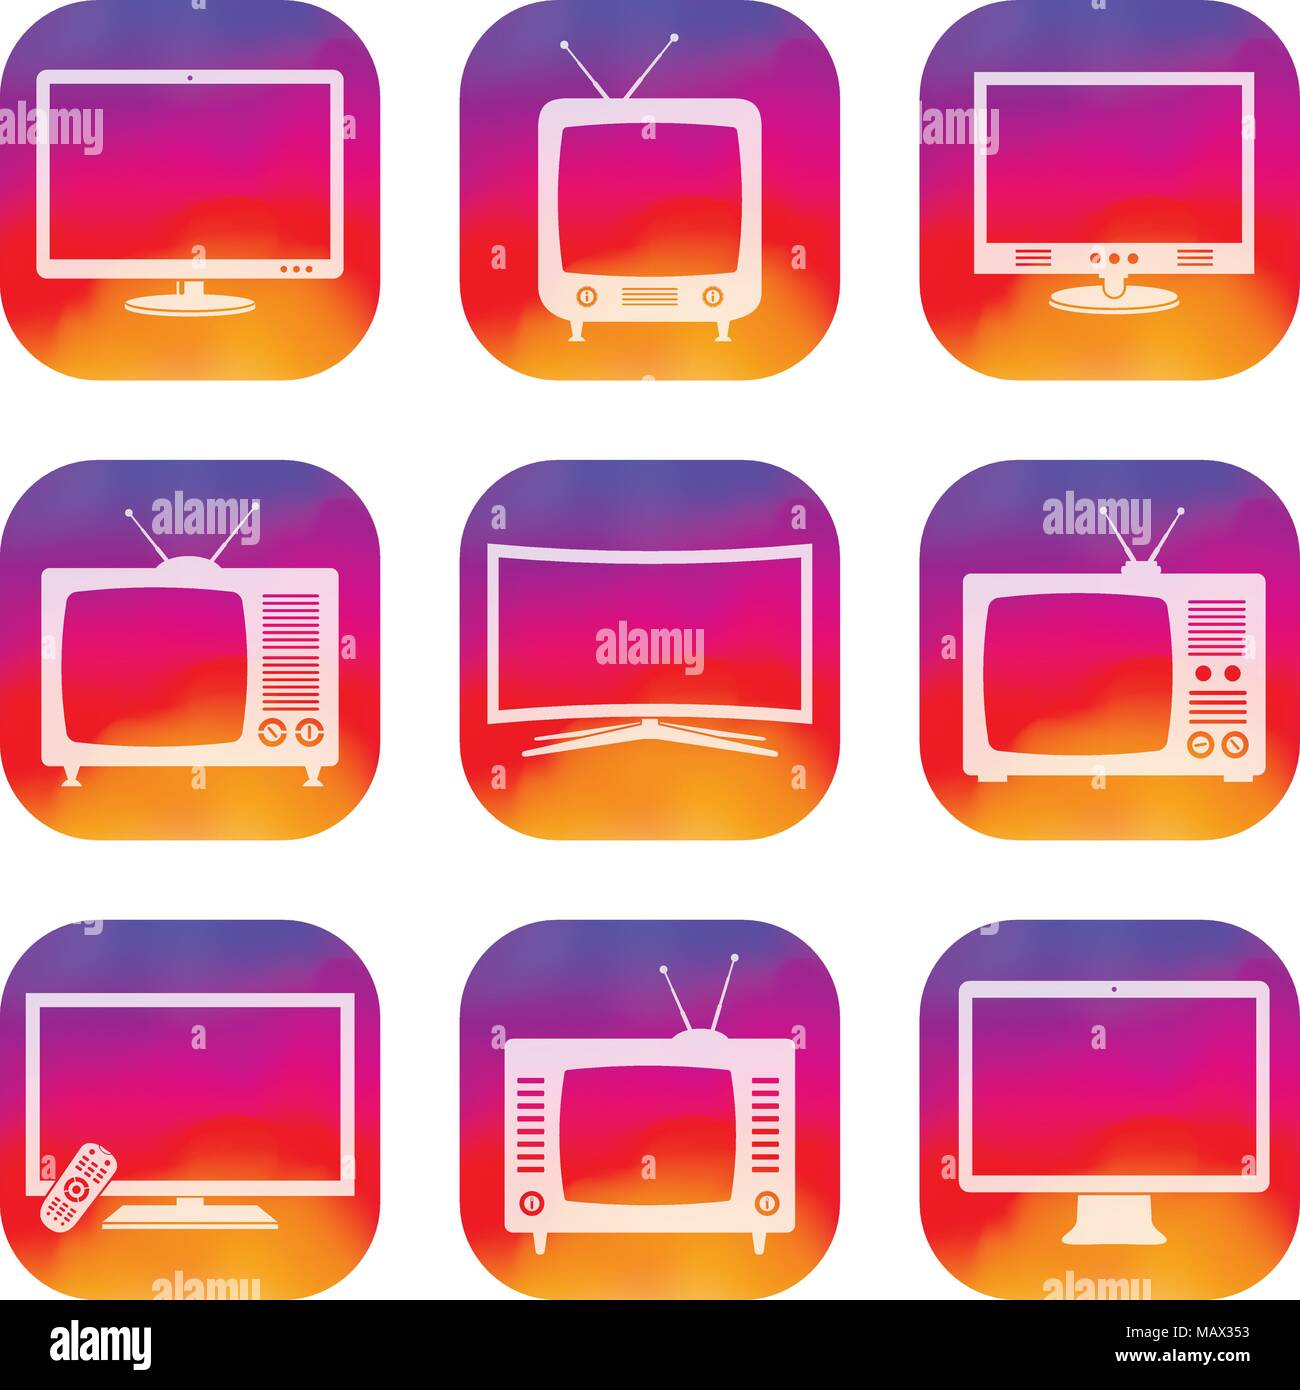 Vector TV apps icons set - Stock Image